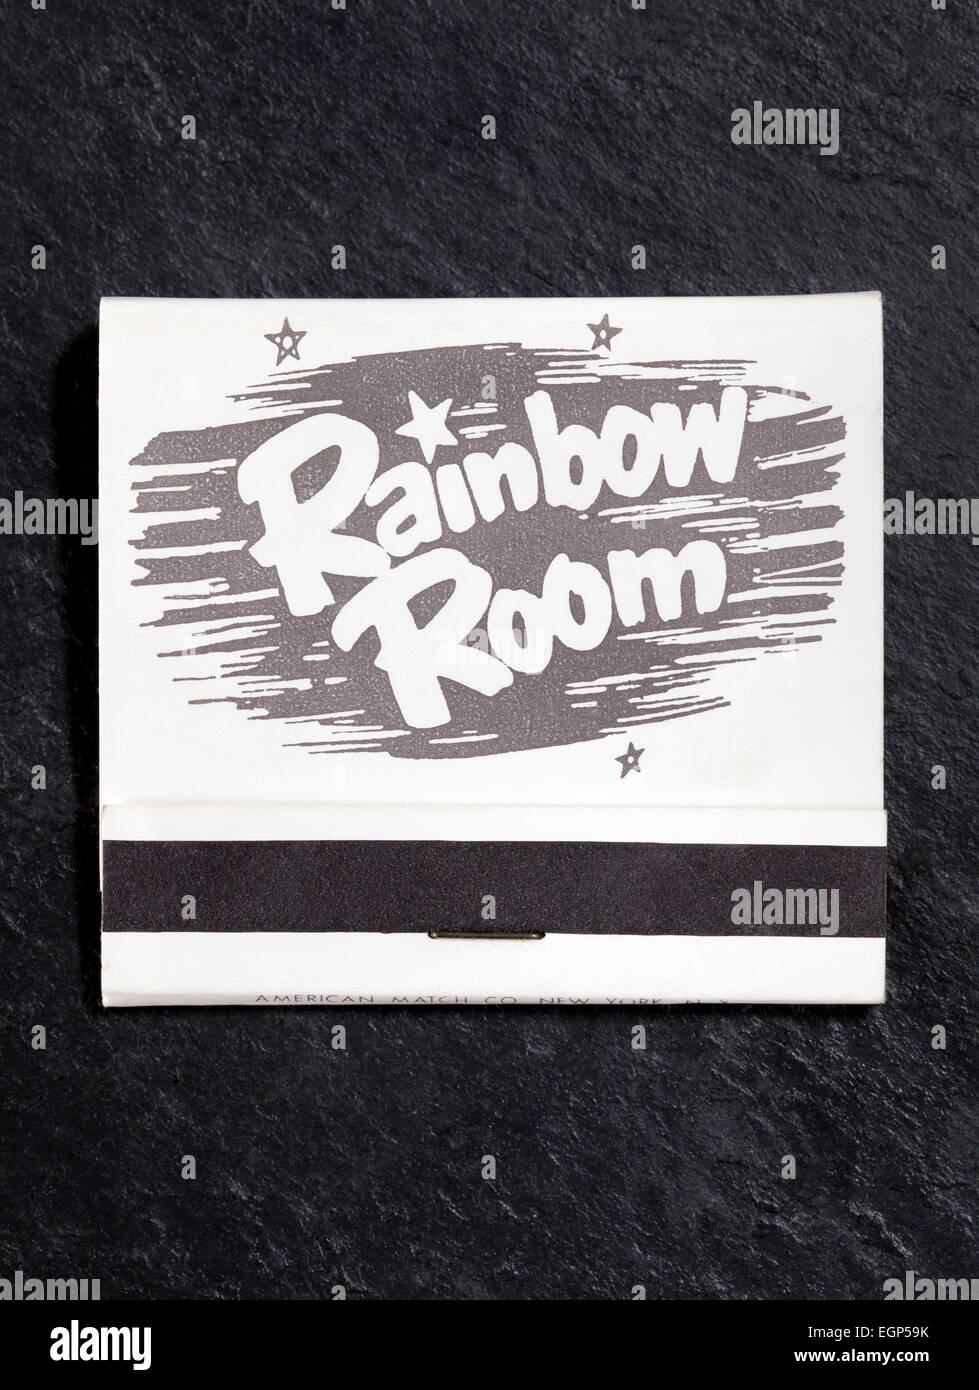 Vintage American Matchbook advertising The Rainbow Room in New York City